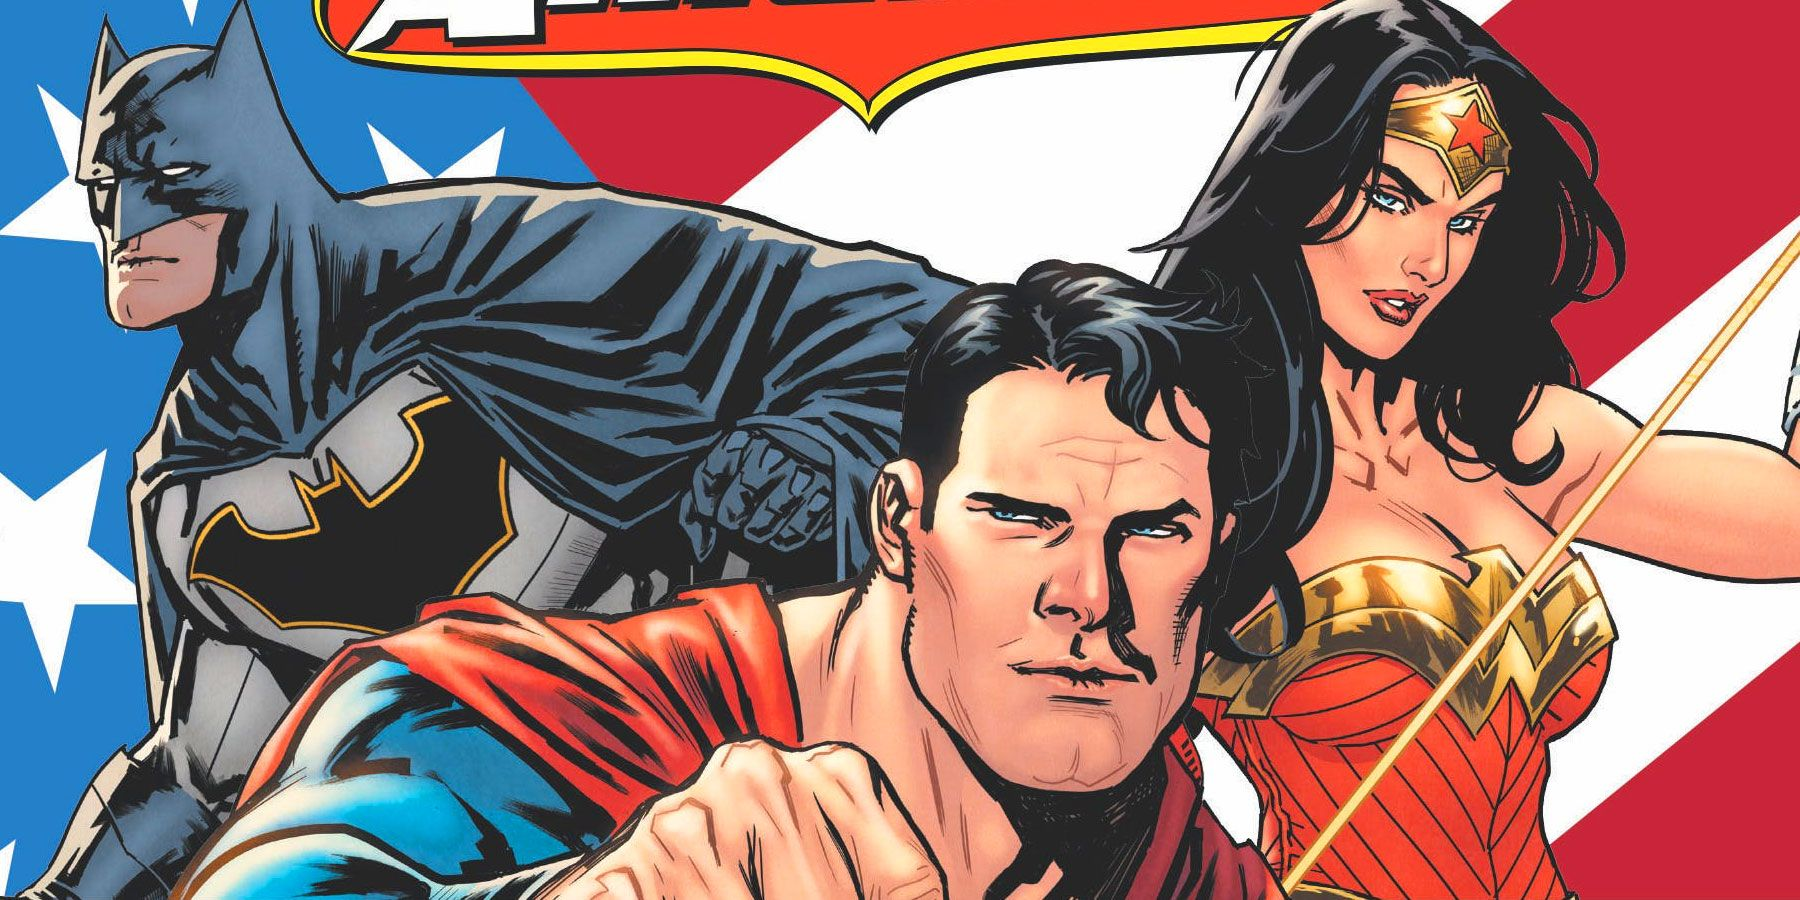 DC Walmart Stories Heading to Comic Book Stores